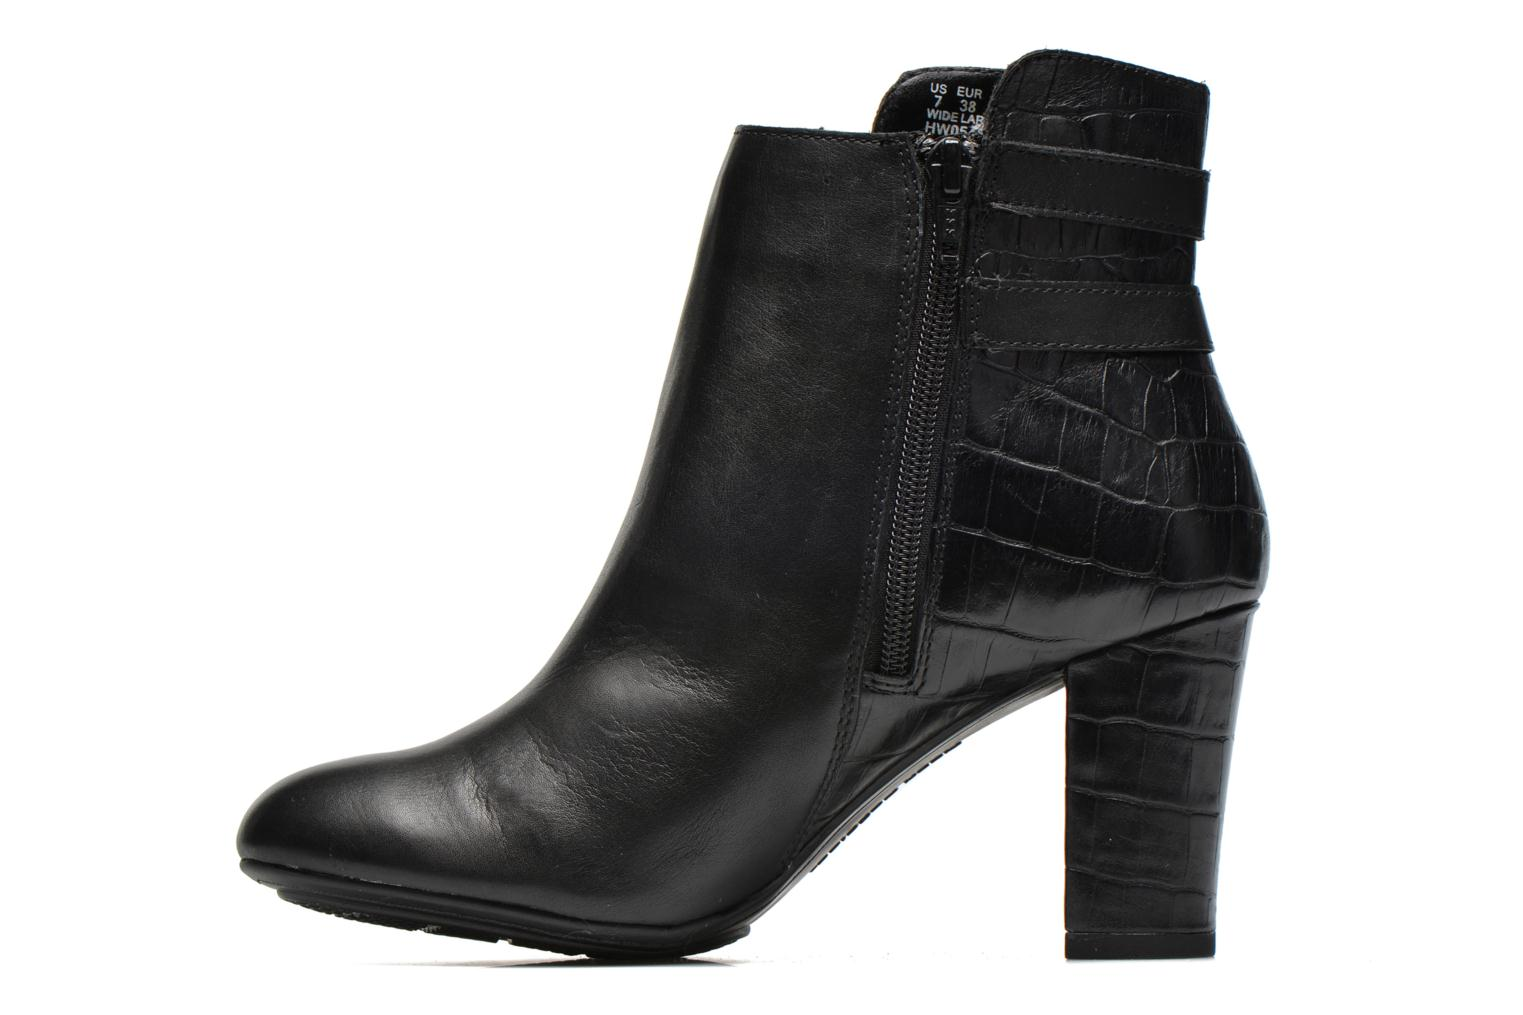 Bottines et boots Hush Puppies Ilsa sisany Noir vue face